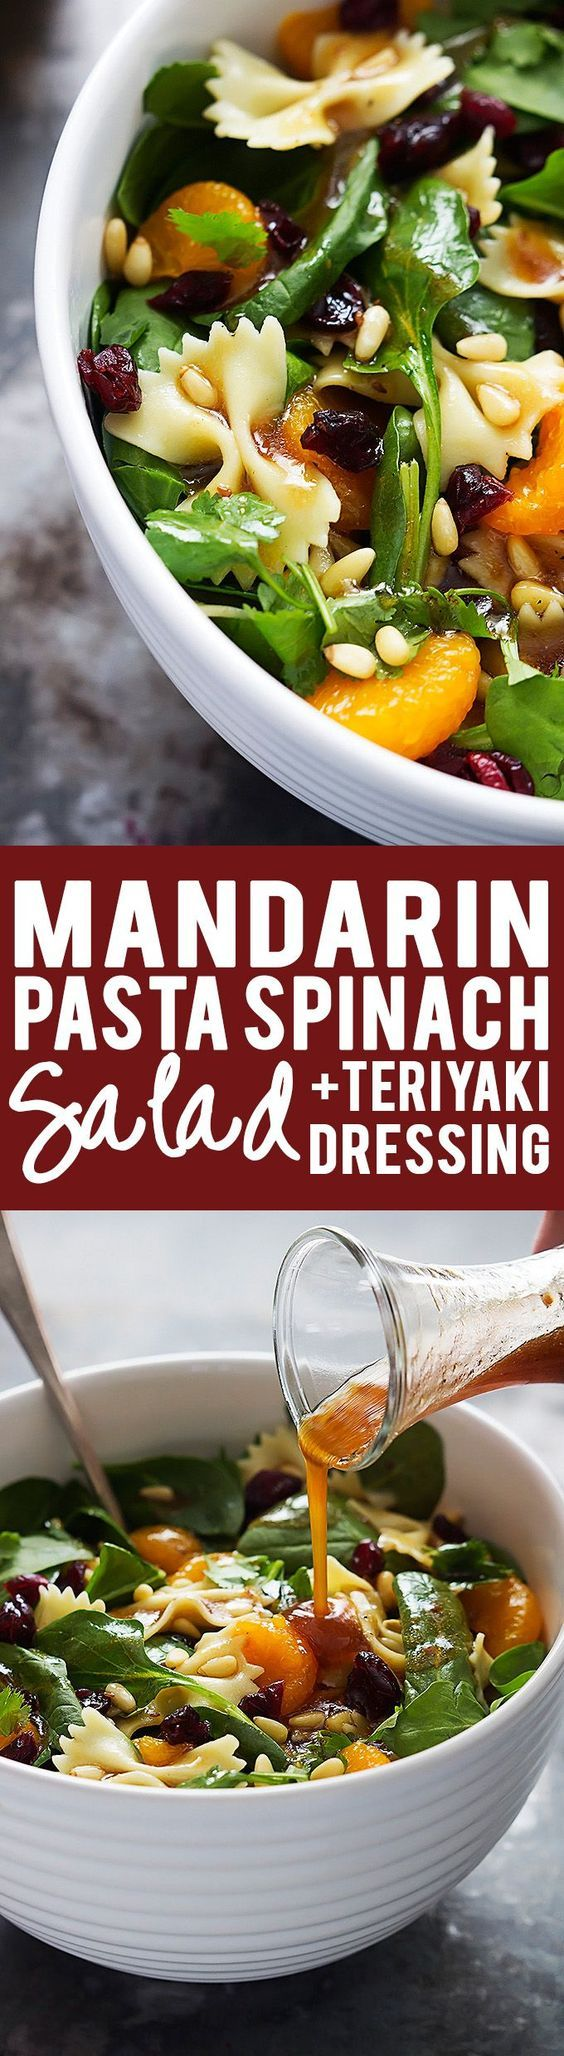 Mandarin Pasta Spinach Salad with Teriyaki Dressing. Looks like the perfect side to take to a backyard barbecue